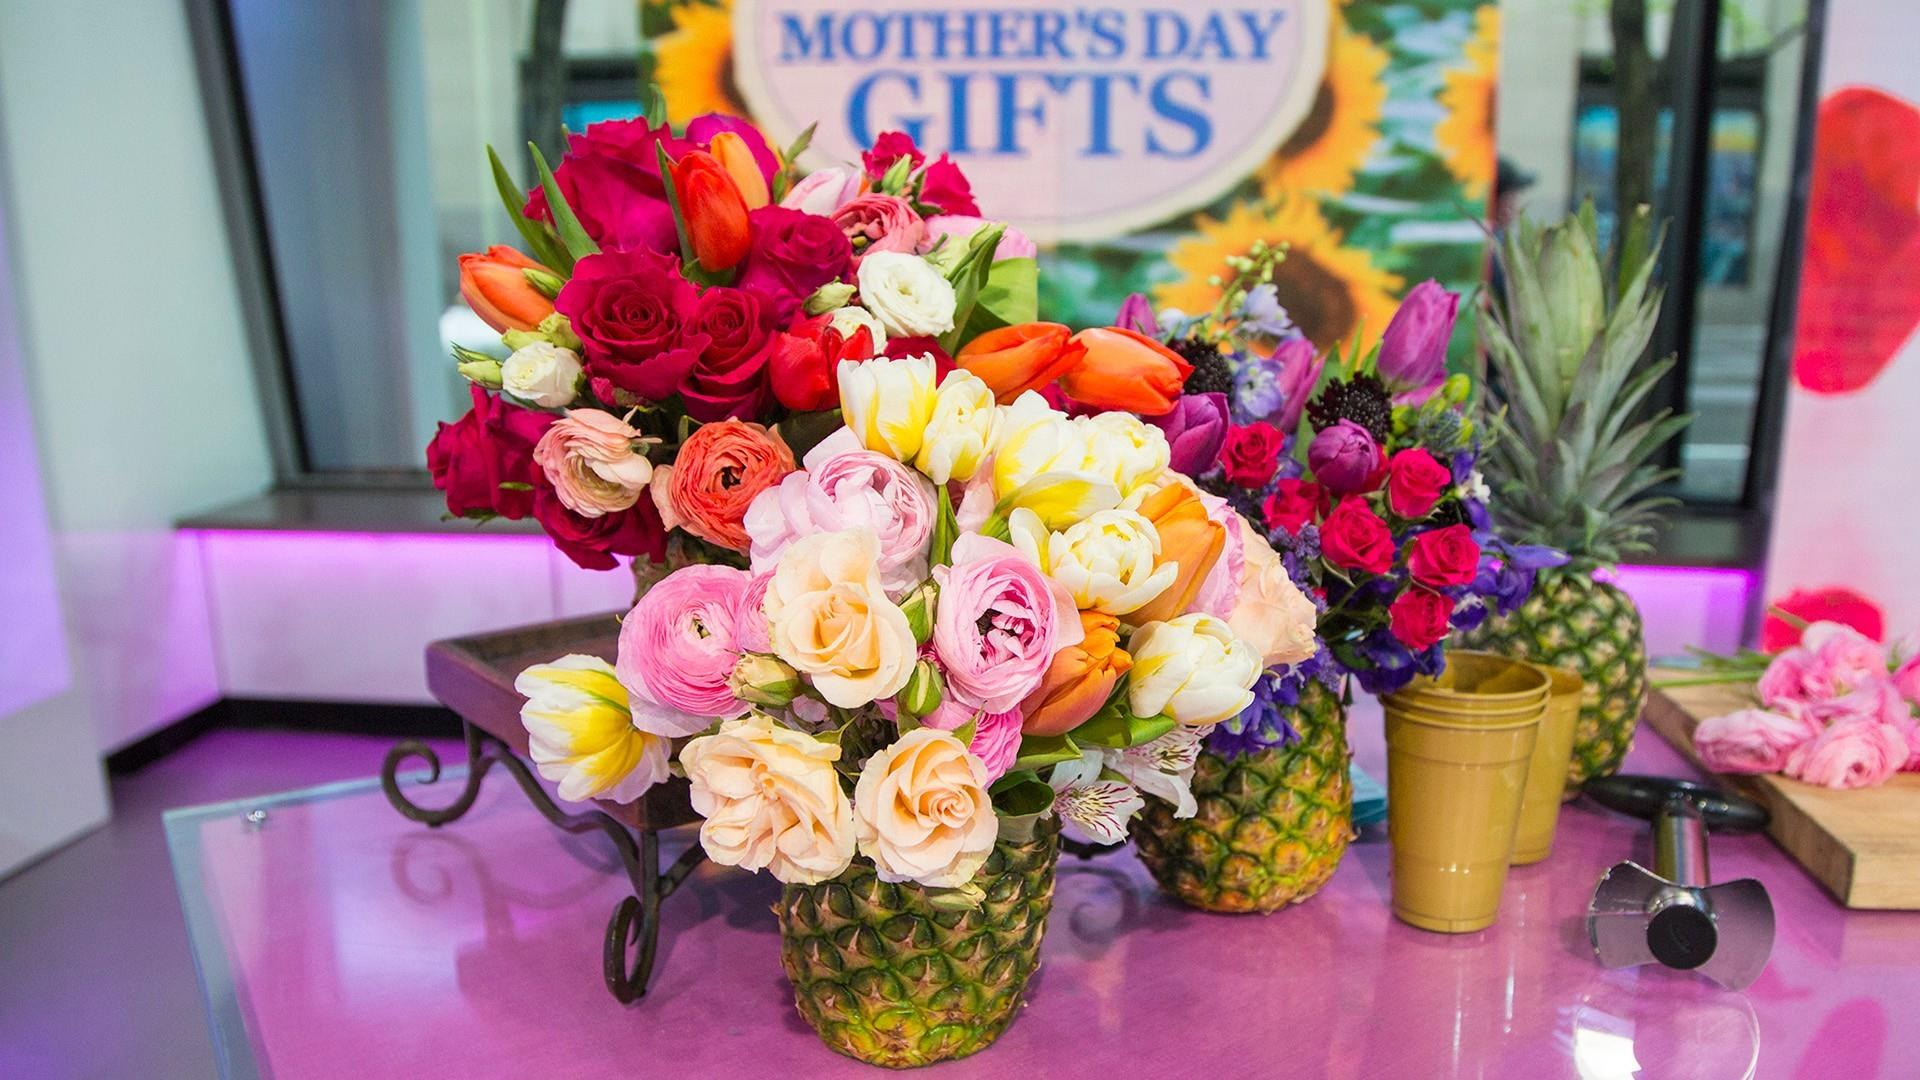 42 Last Minute Mothers Day Gifts That Shell Really Love